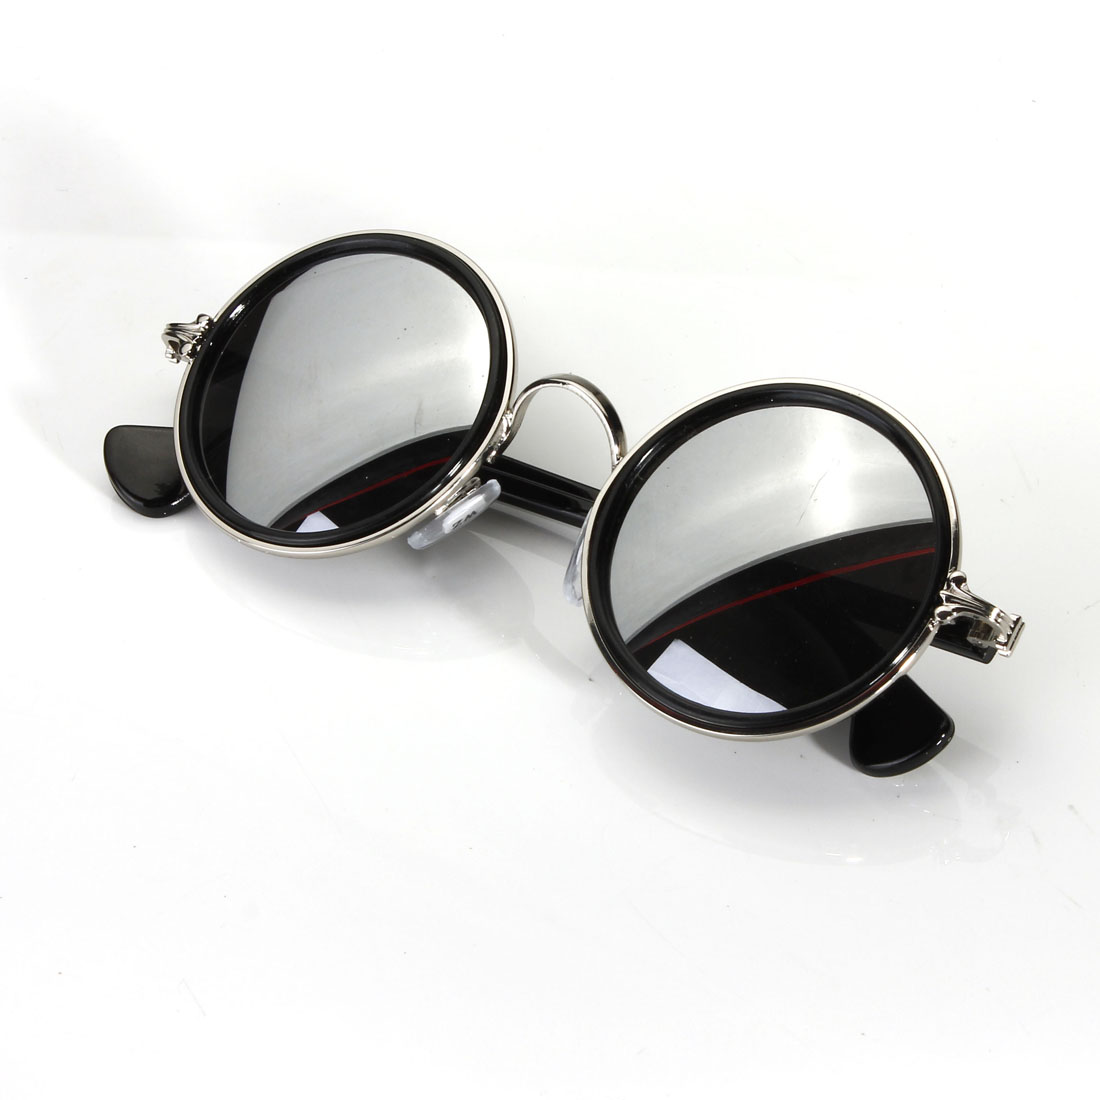 fashion vintage round mirror lens uv400 sunglasses women. Black Bedroom Furniture Sets. Home Design Ideas